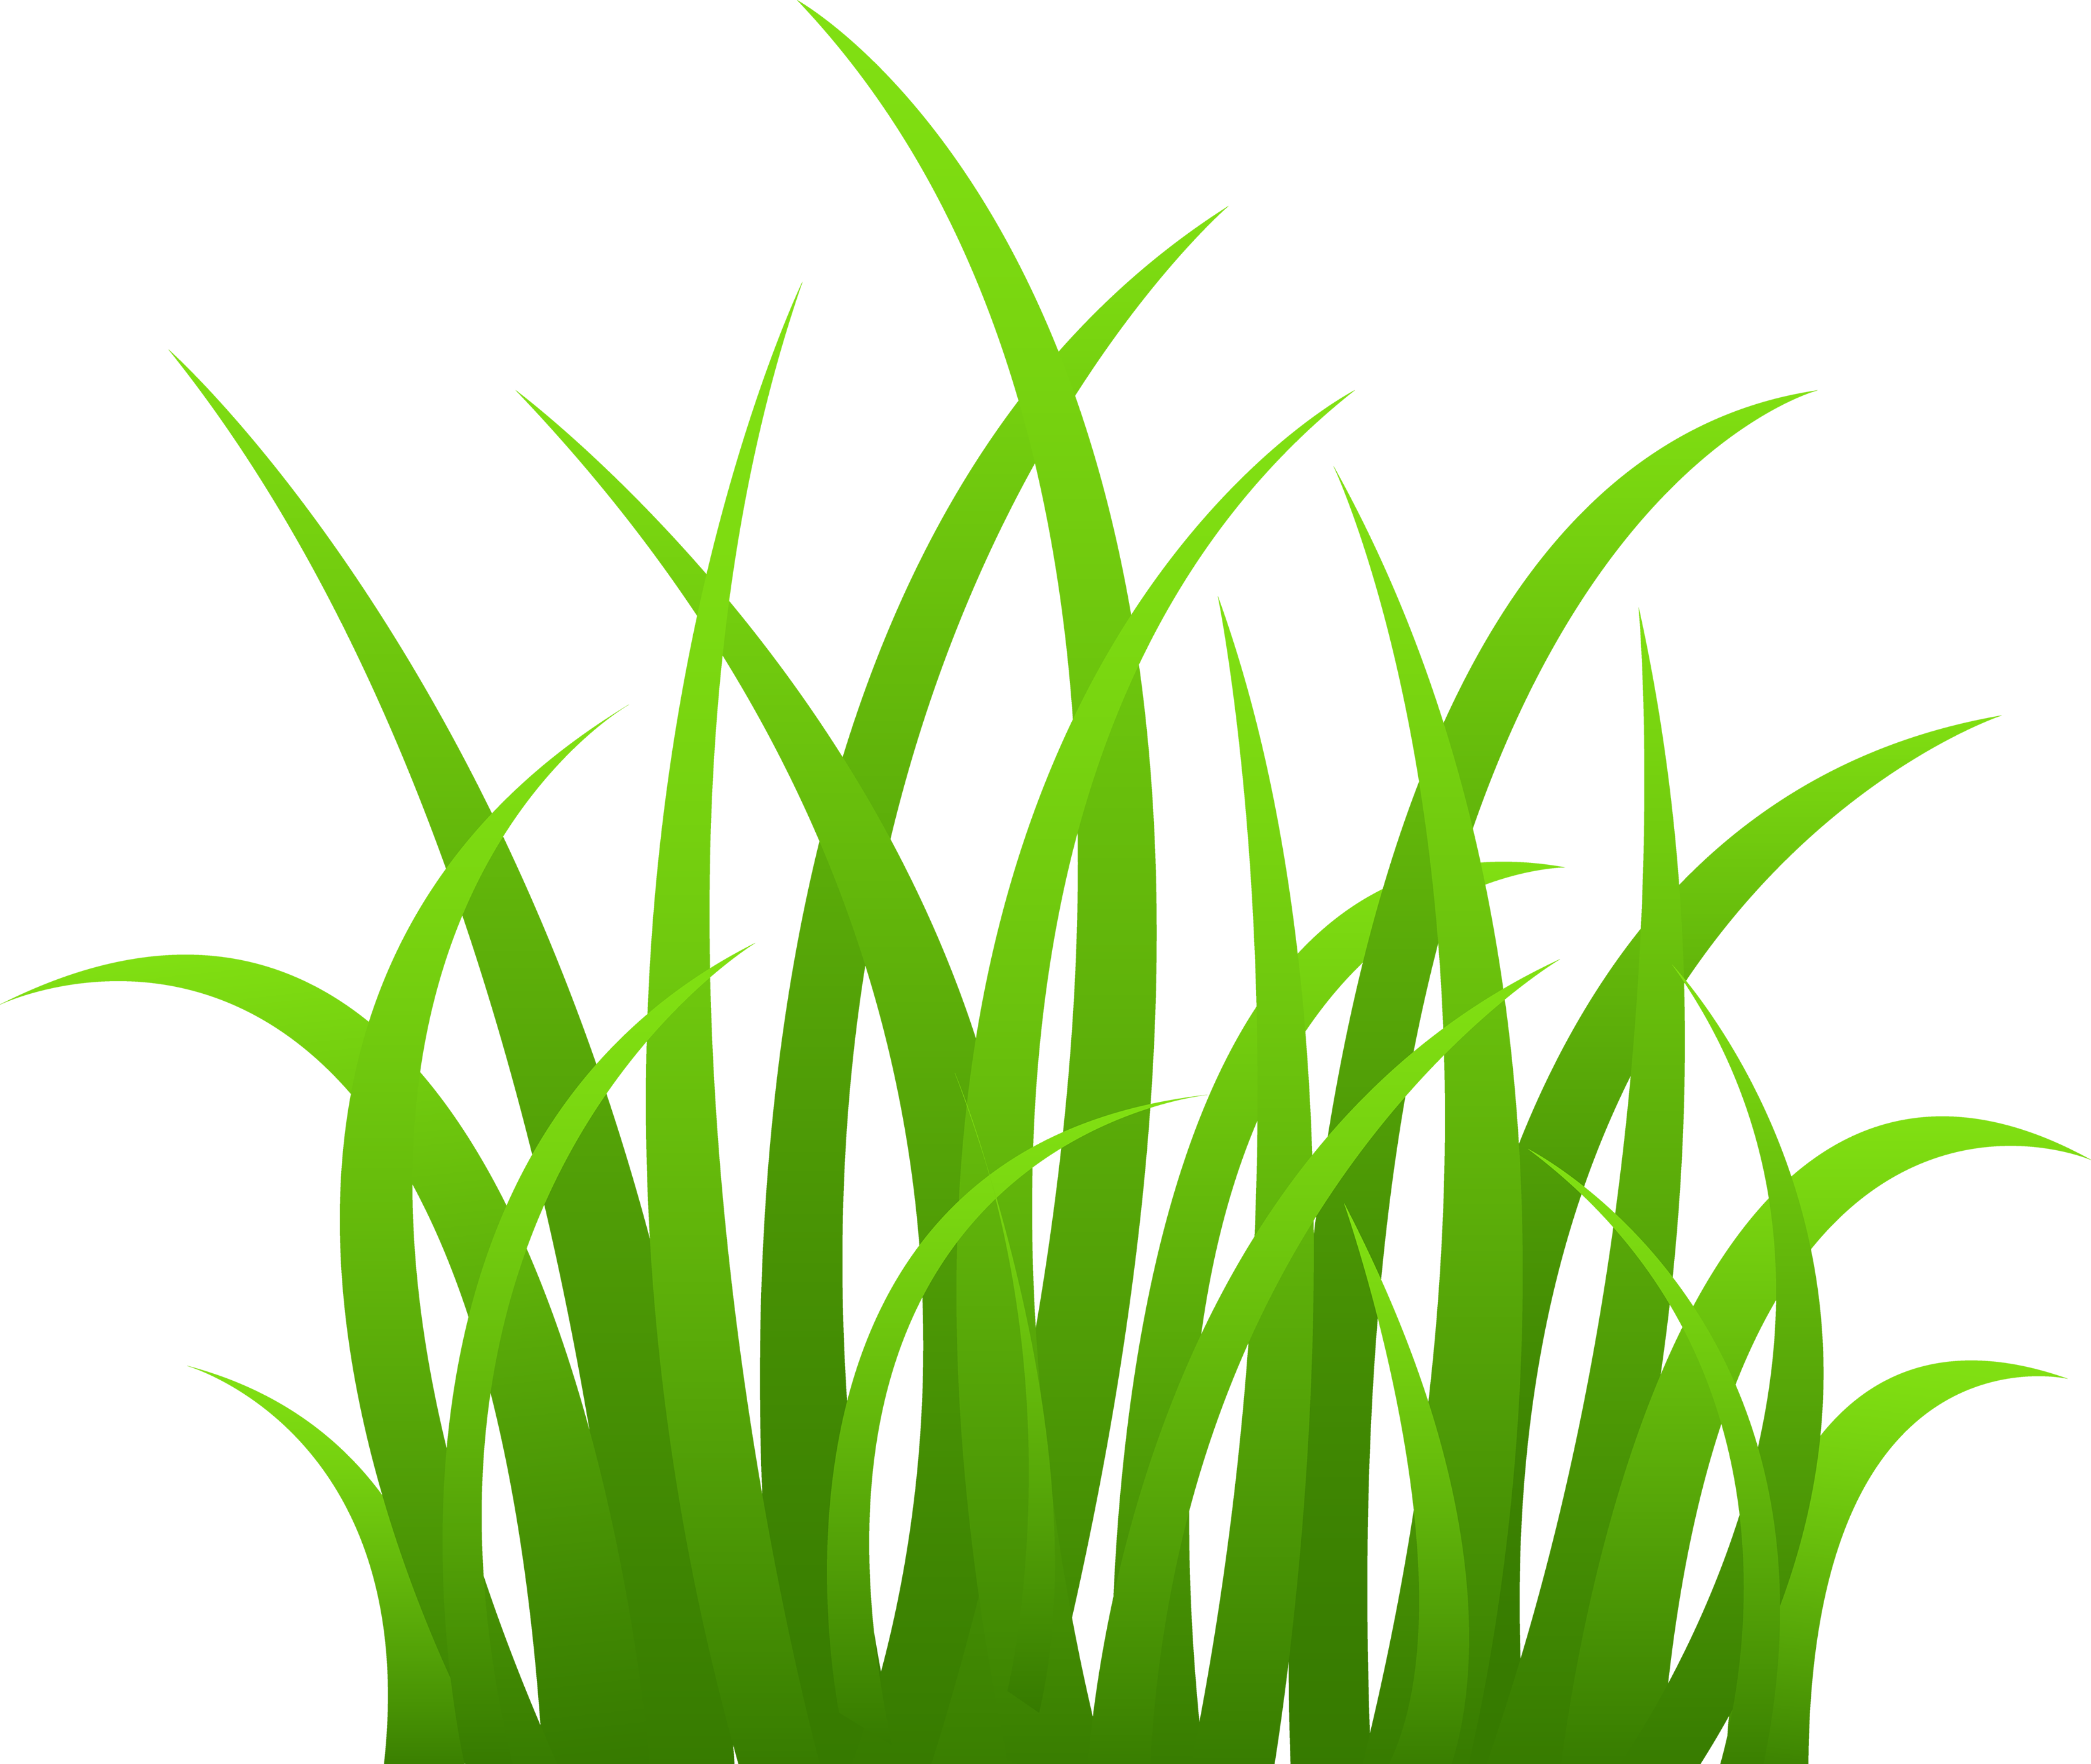 Thin grass clipart clipart black and white stock Grass PNG images, pictures clipart black and white stock